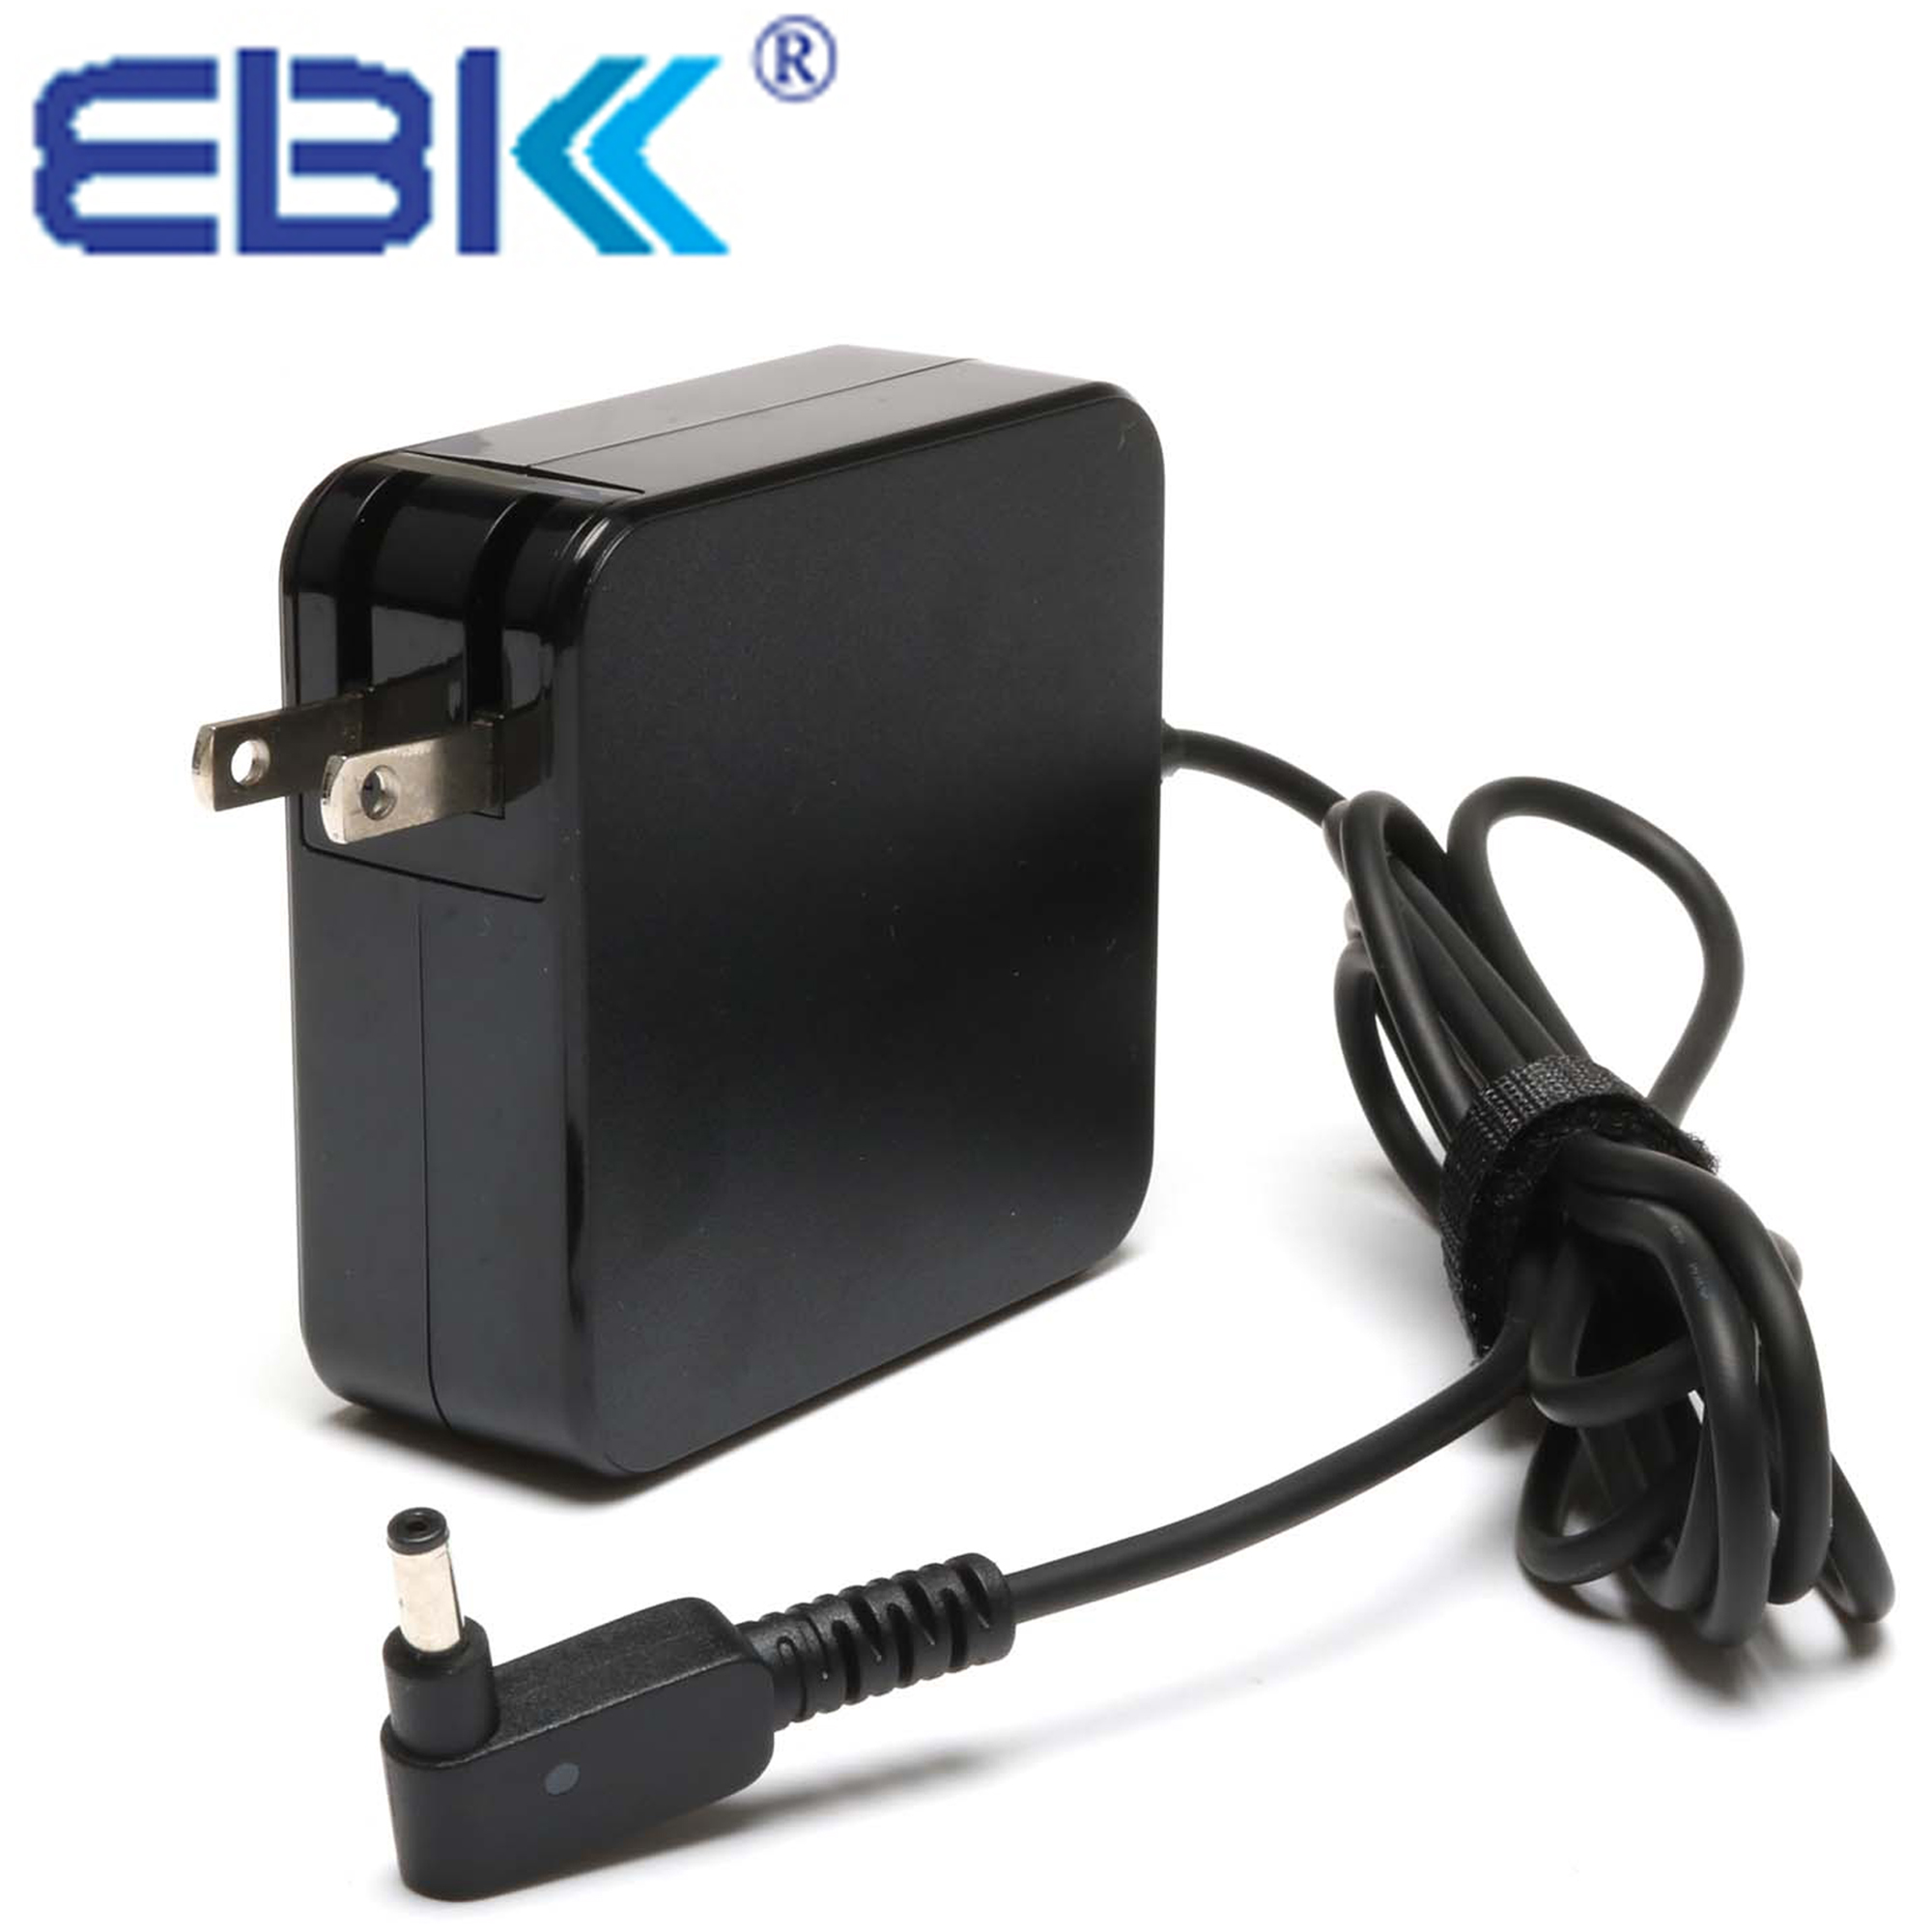 Ebk Ac Charger Power Cord Adapter Portable Wall Charger Laptop